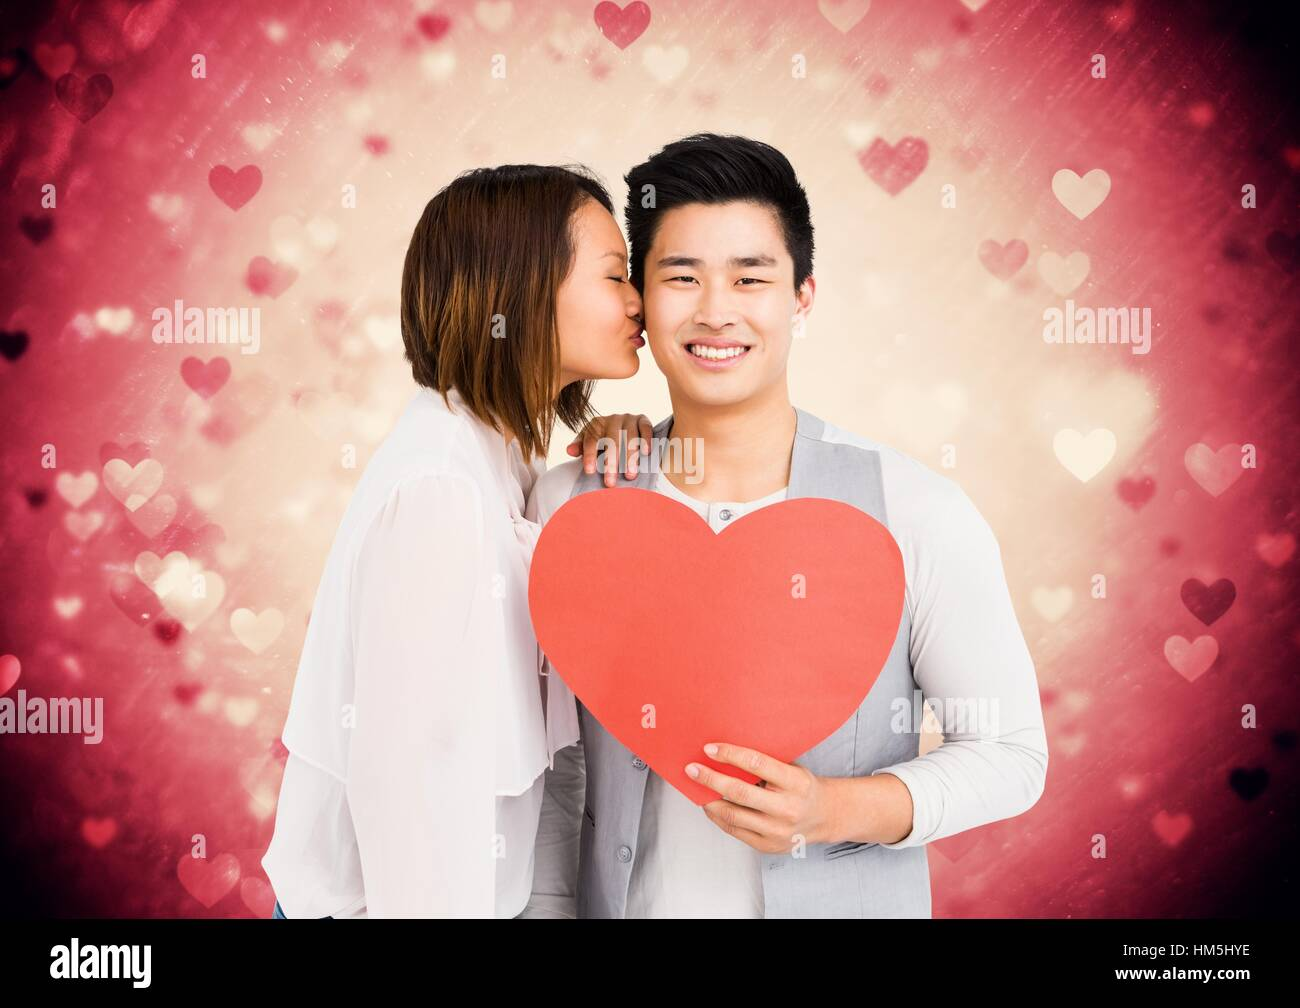 Woman kissing on man cheeks while holding red heart - Stock Image